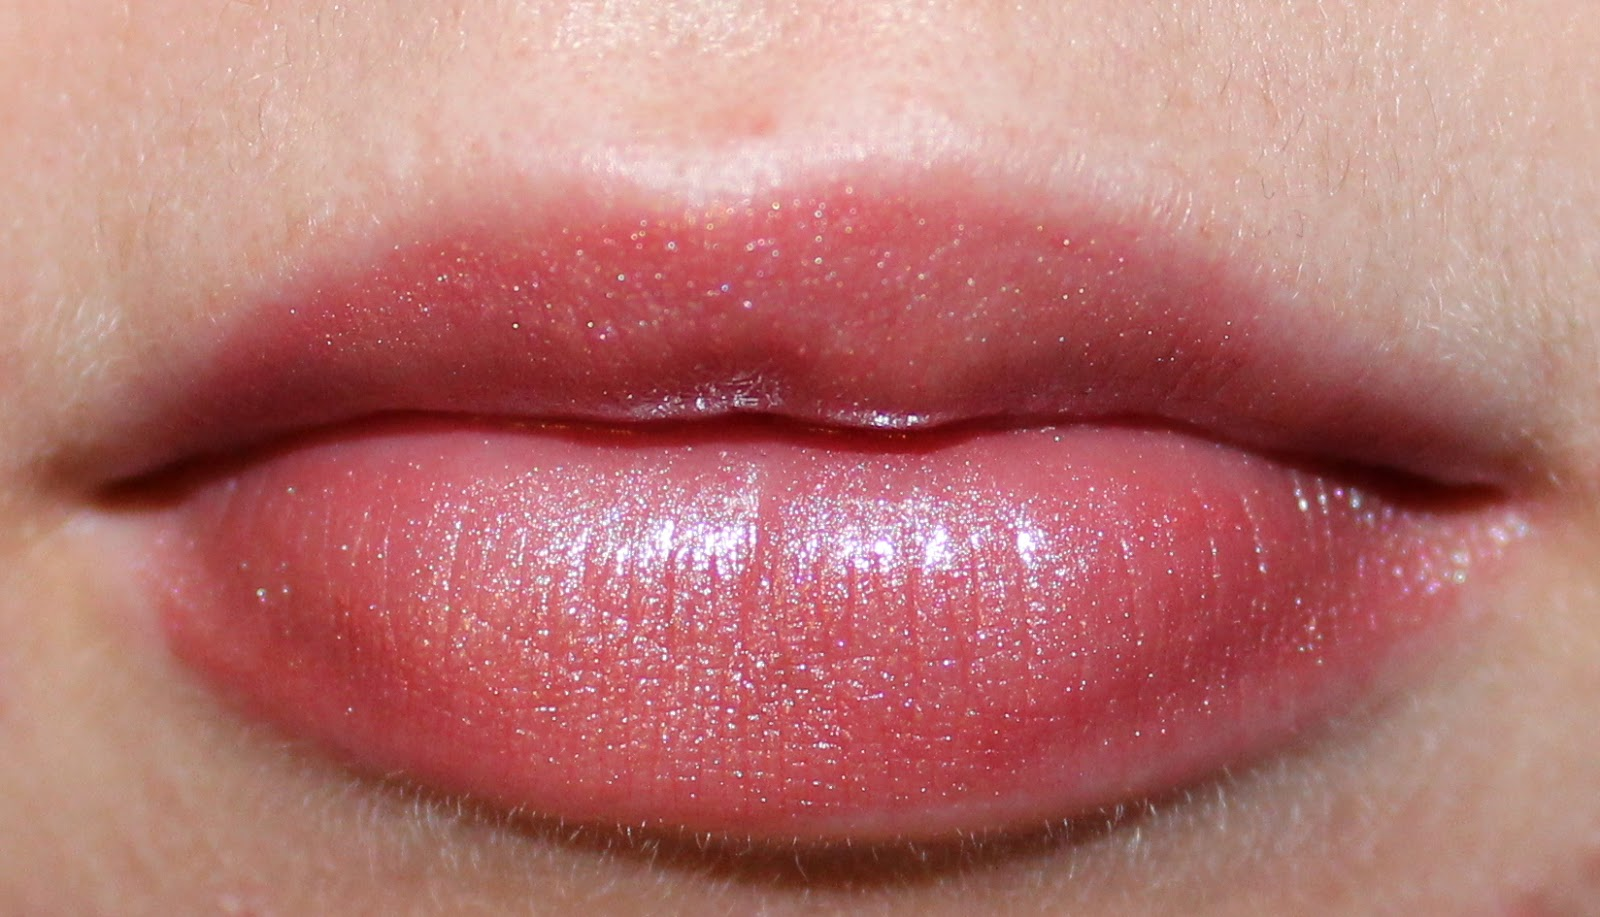 Rimmel Moisture Renew Lipstick in #125 To Nude or Not to Nude?